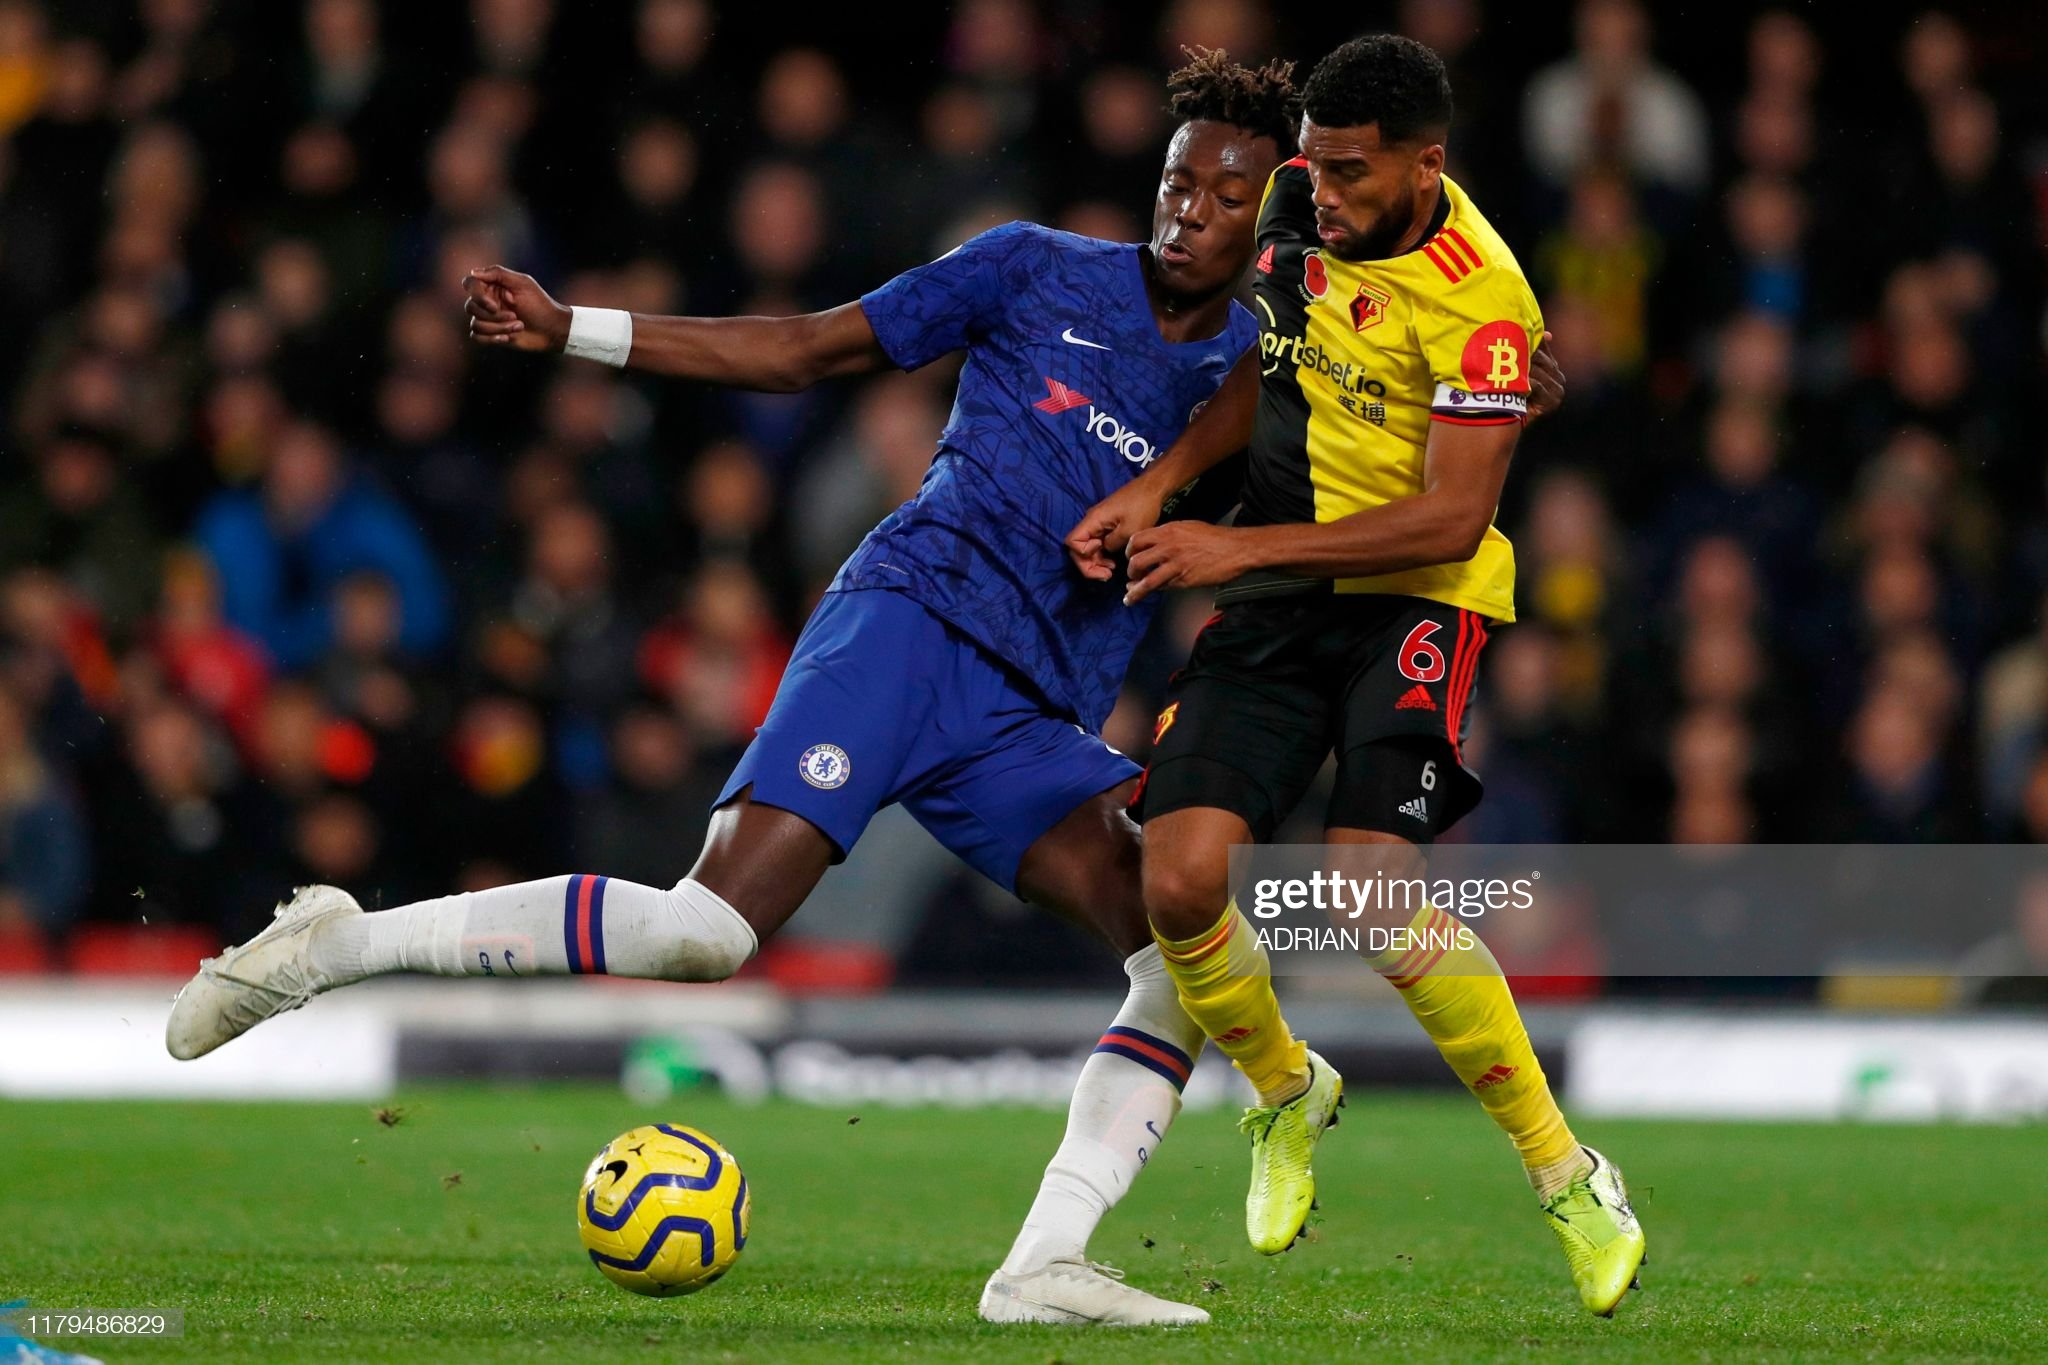 Chelsea vs Watford Preview, prediction and odds